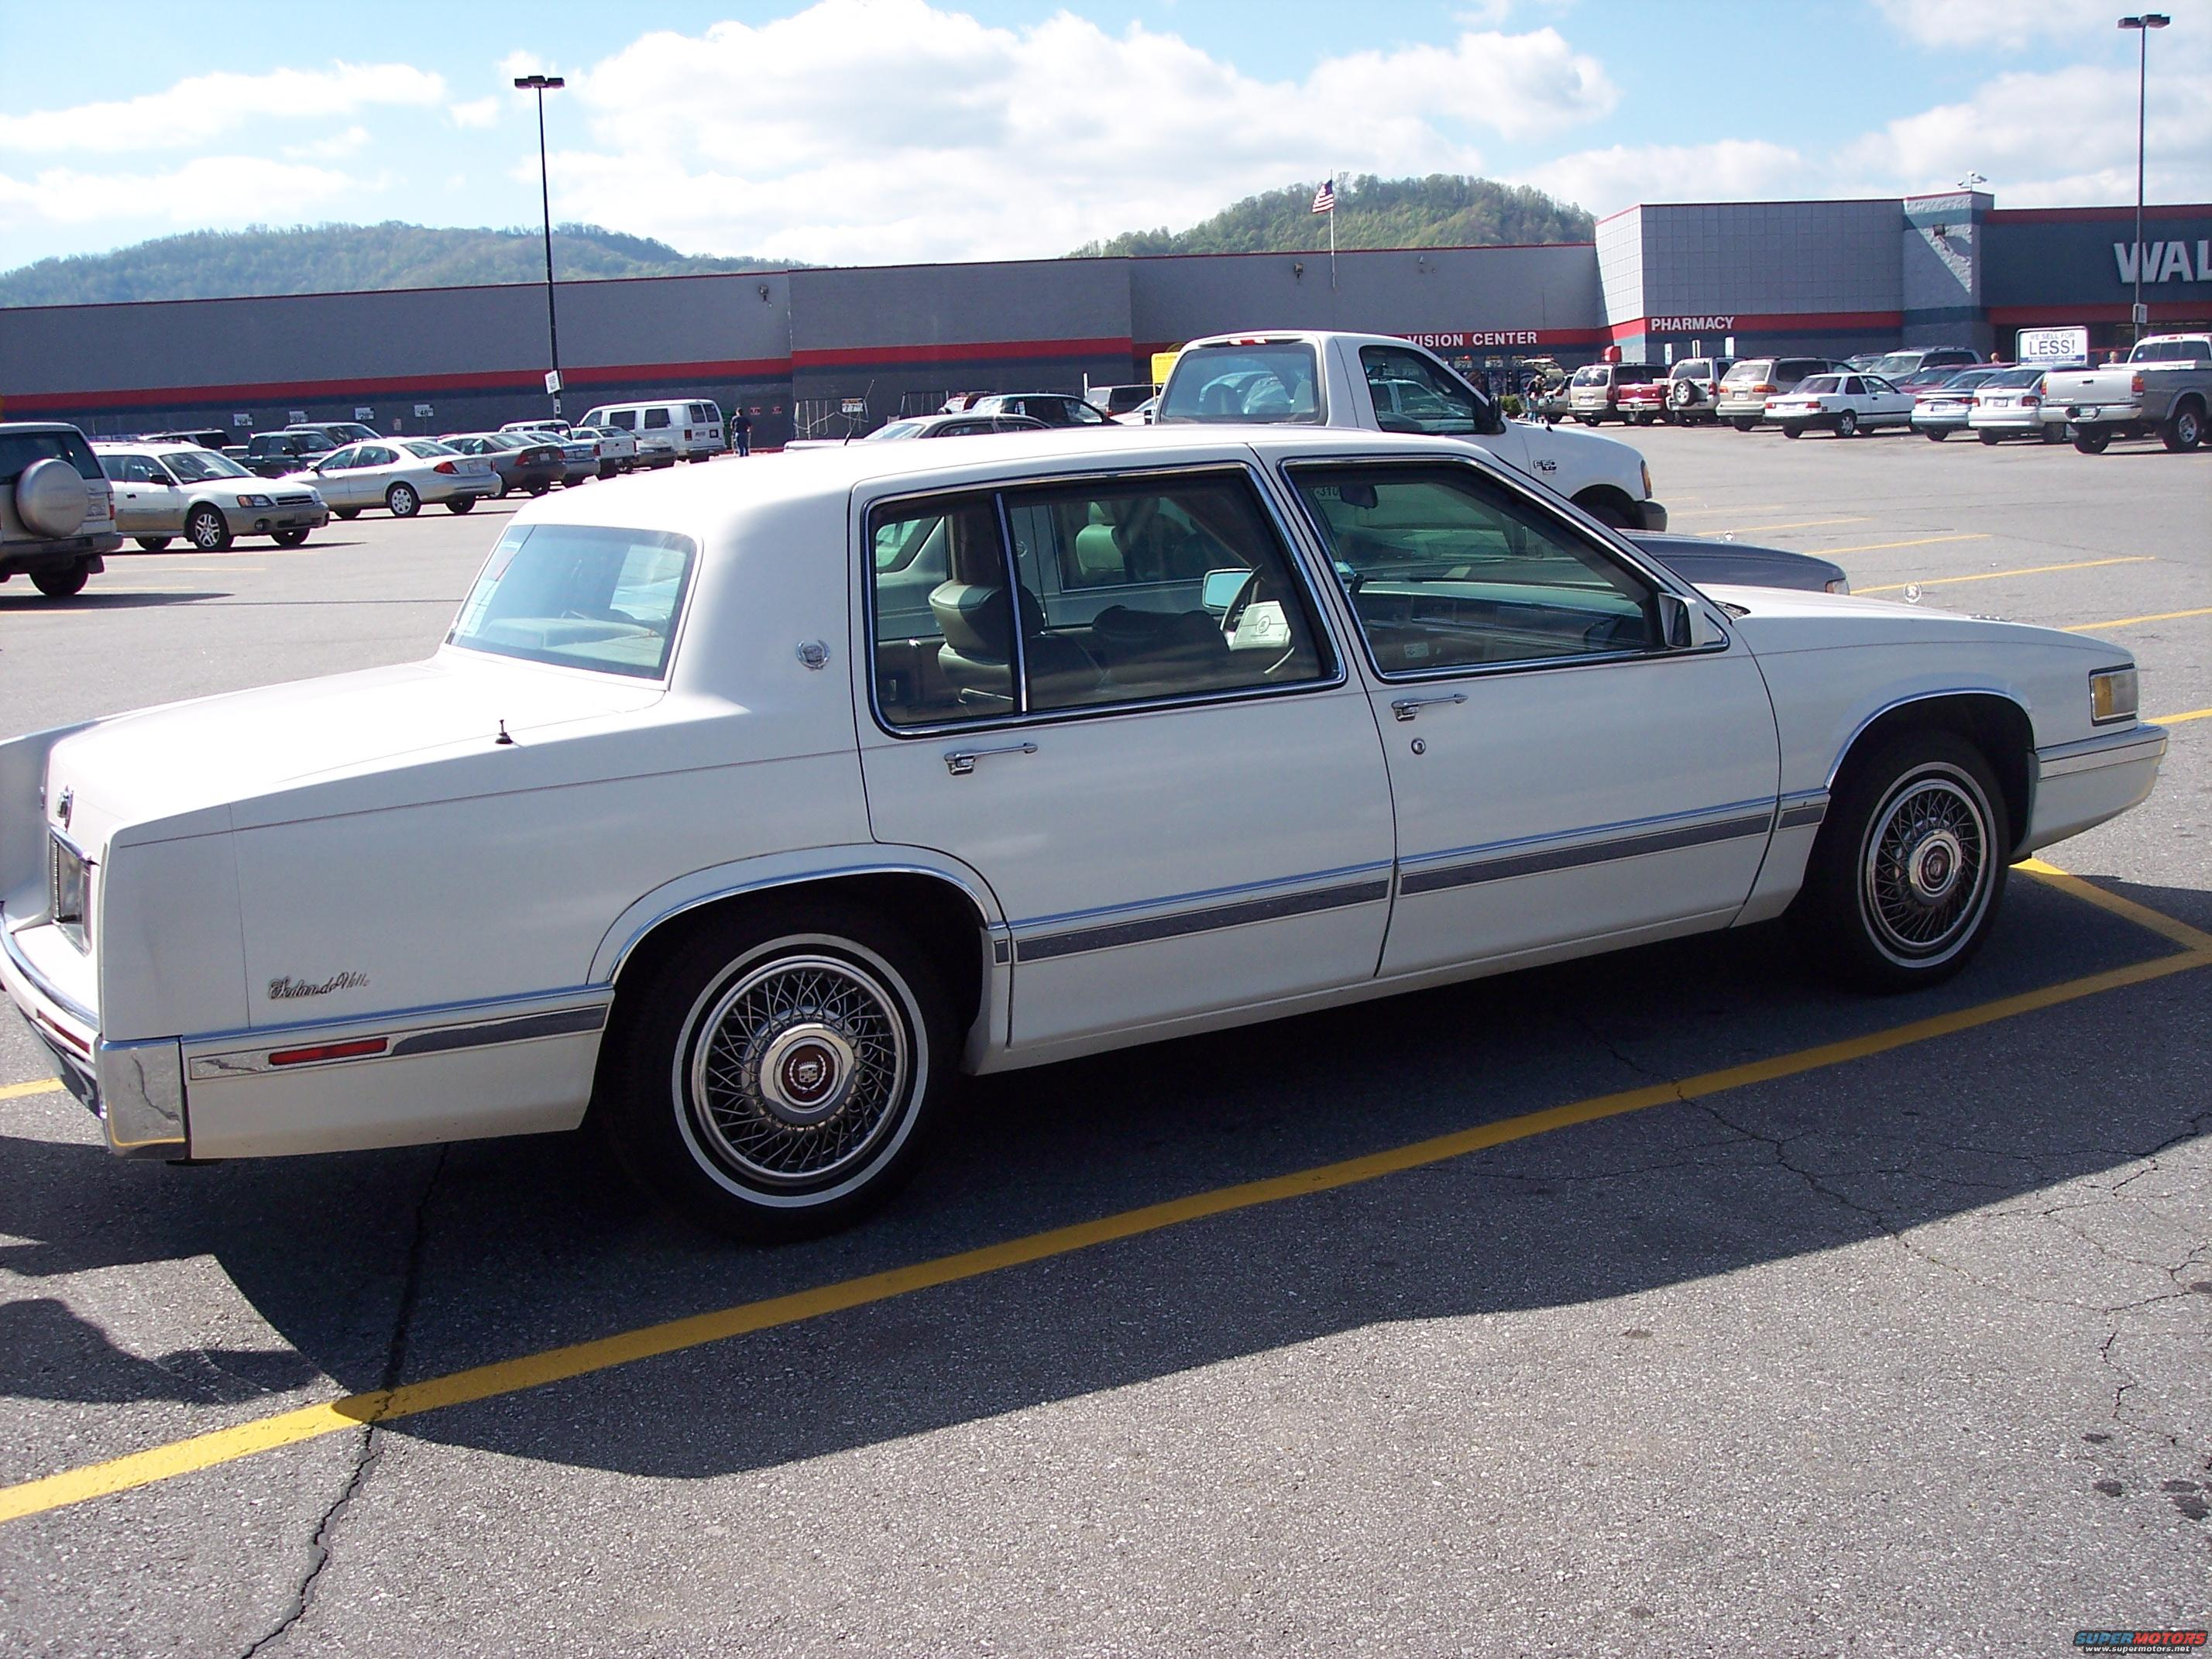 Blown Off Head Man additionally Ce Lrg further C Ef likewise Large in addition C Ed F A Ed. on 1996 cadillac eldorado chassis